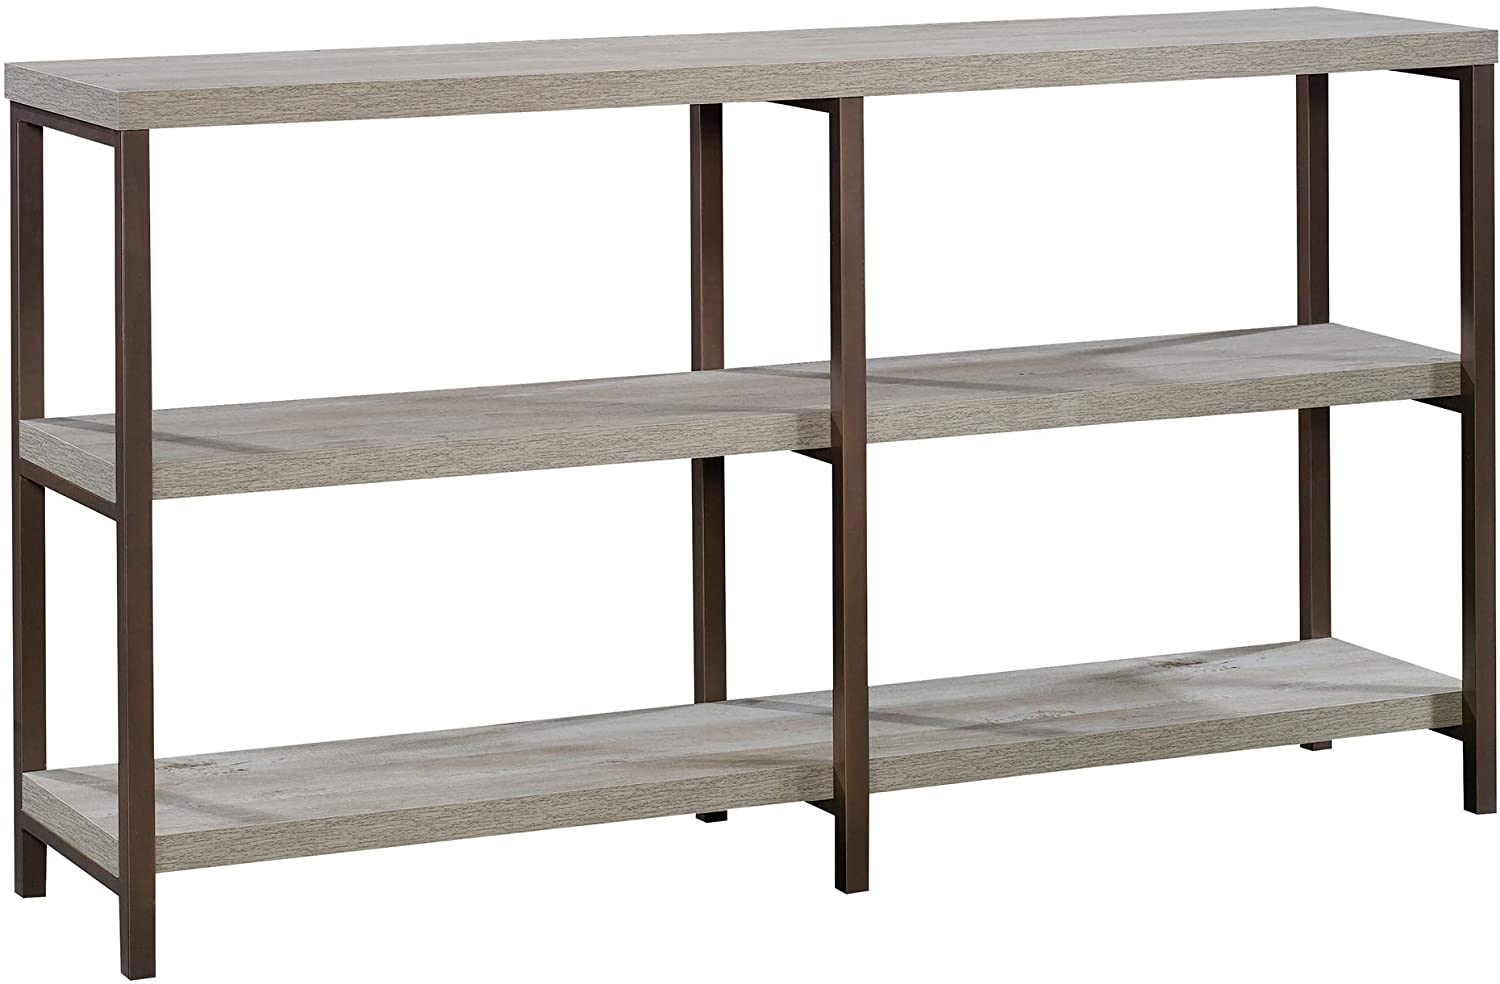 Sauder Manhattan Gate Console Table, L: 66.02